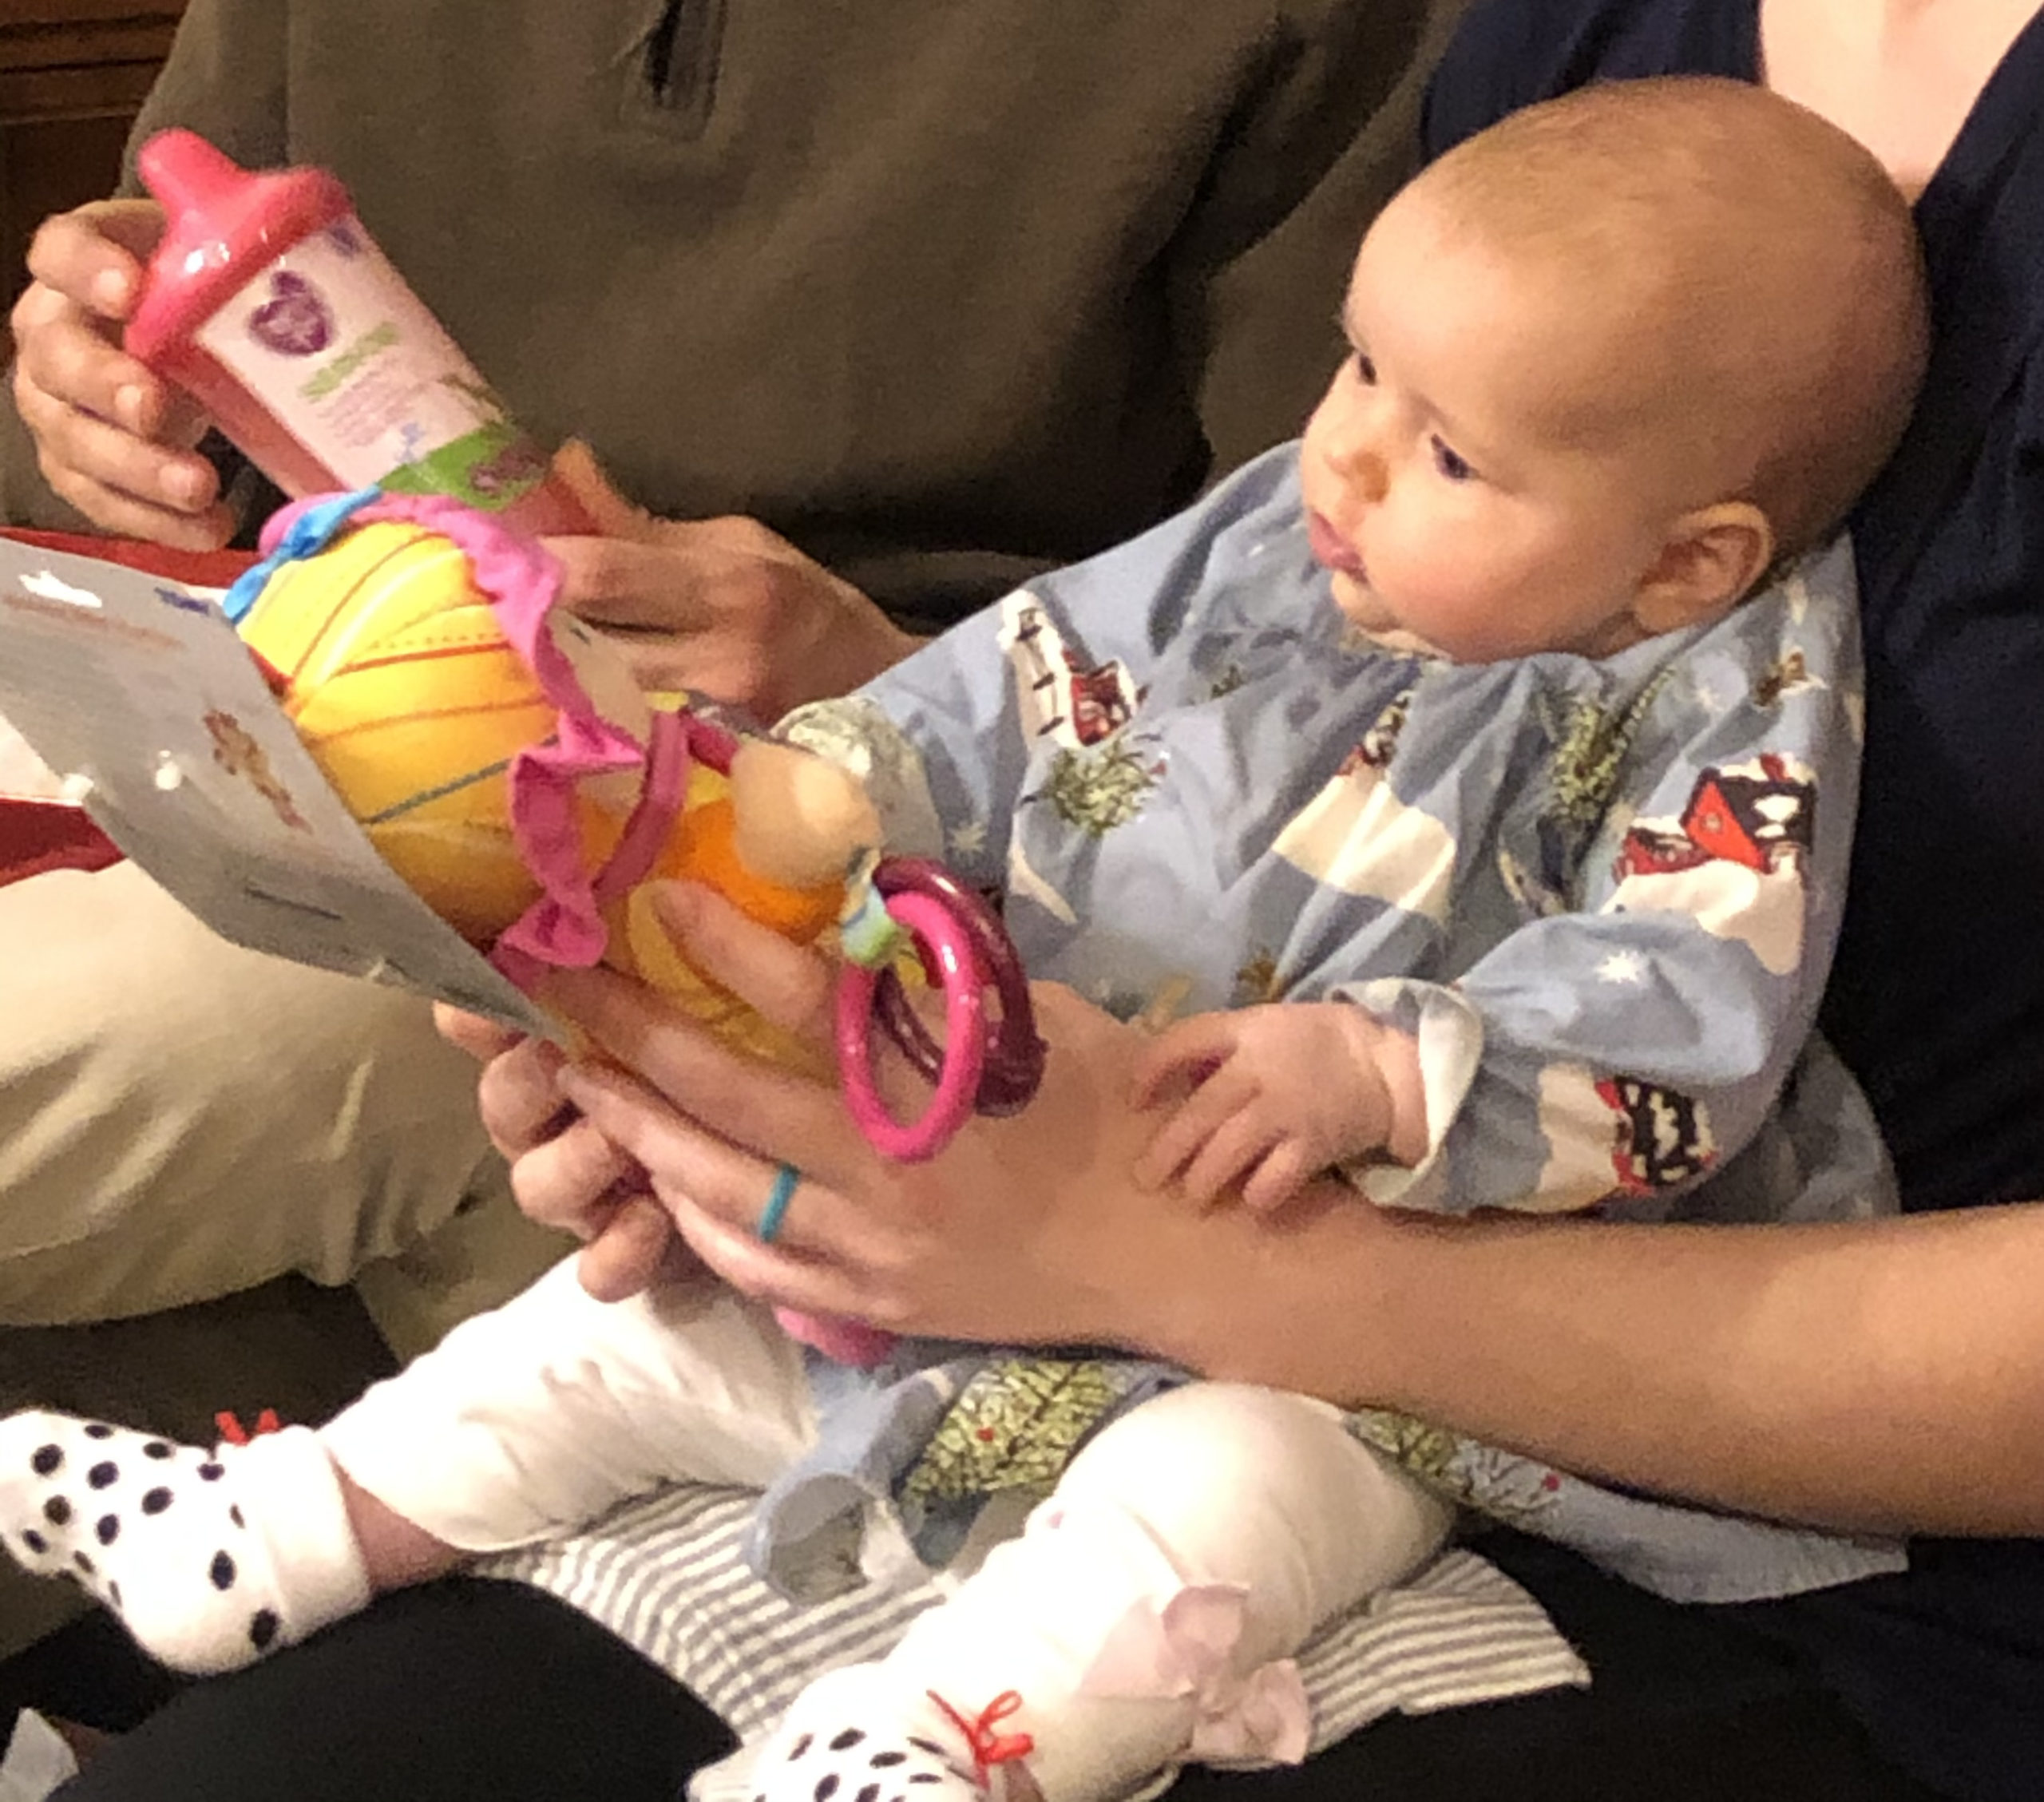 infant looking at the face of a stuffed doll with a yellow hat, outfit, and pink ribbon around the hat.